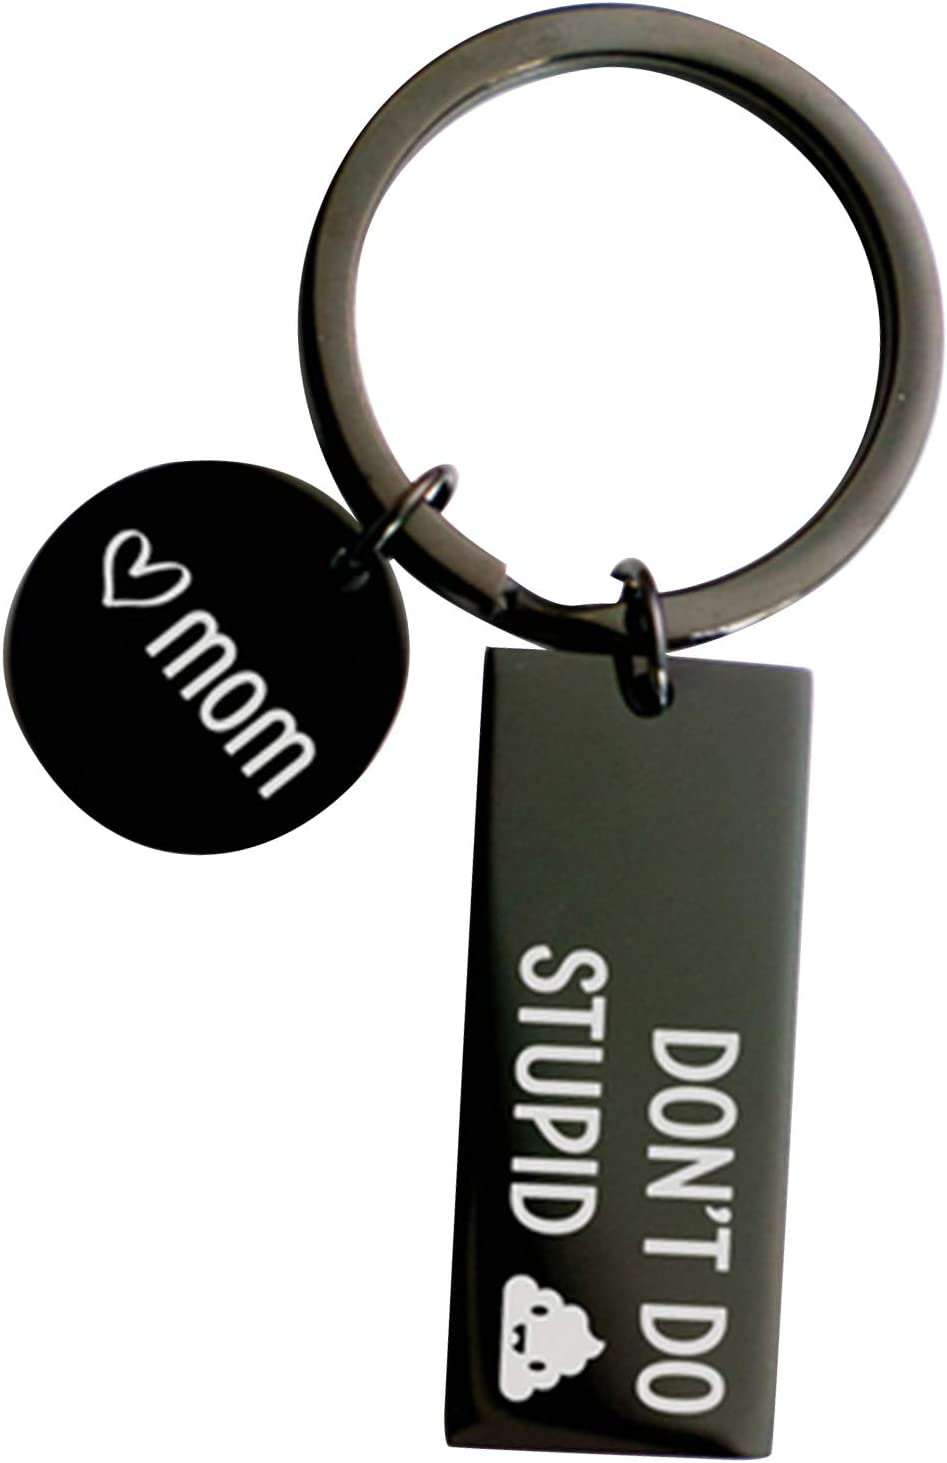 Funny Sarcasm Gift for Family Friends,Son /& Daughter Gift Christmas Birthday Black 2020 Shit Keychain Dont Do Stupid Poop Love Mom